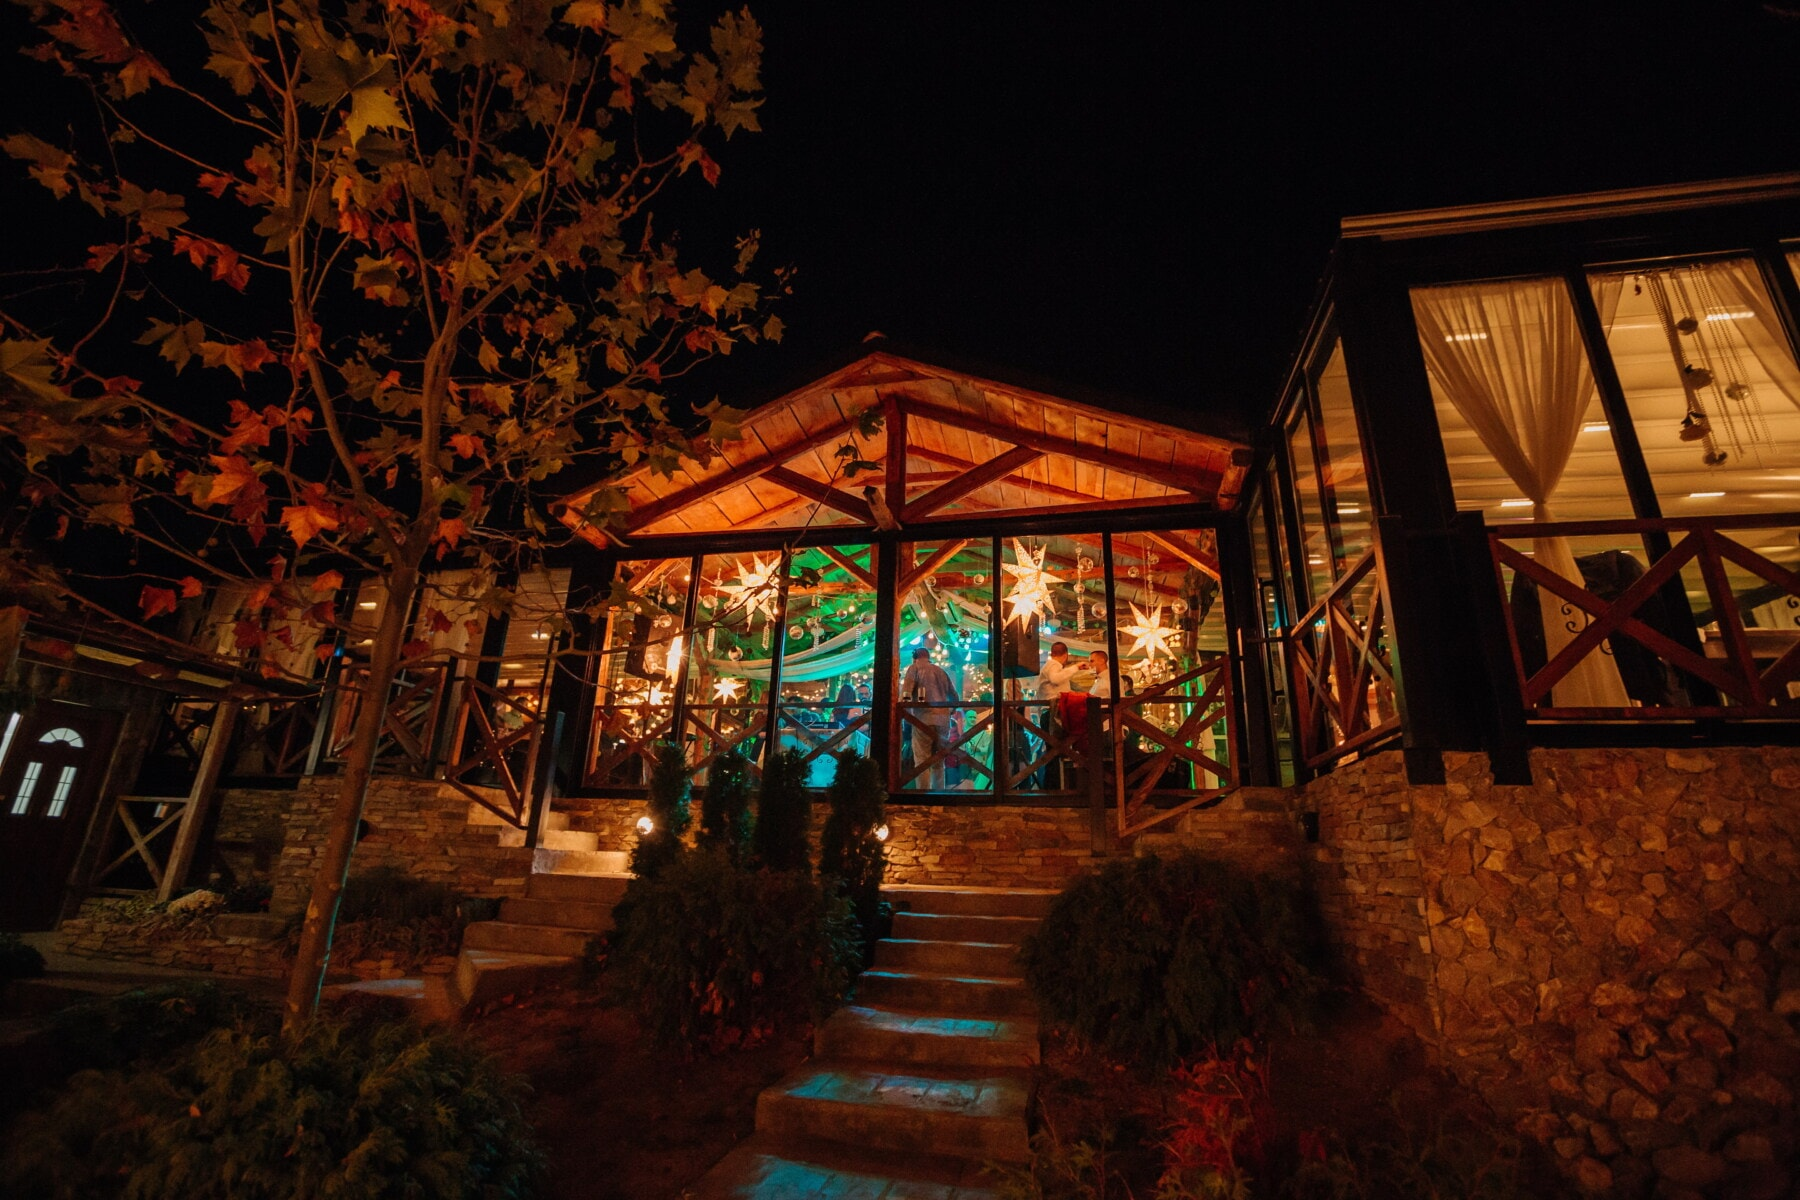 party, cafeteria, night, exterior, light, building, house, home, wood, architecture